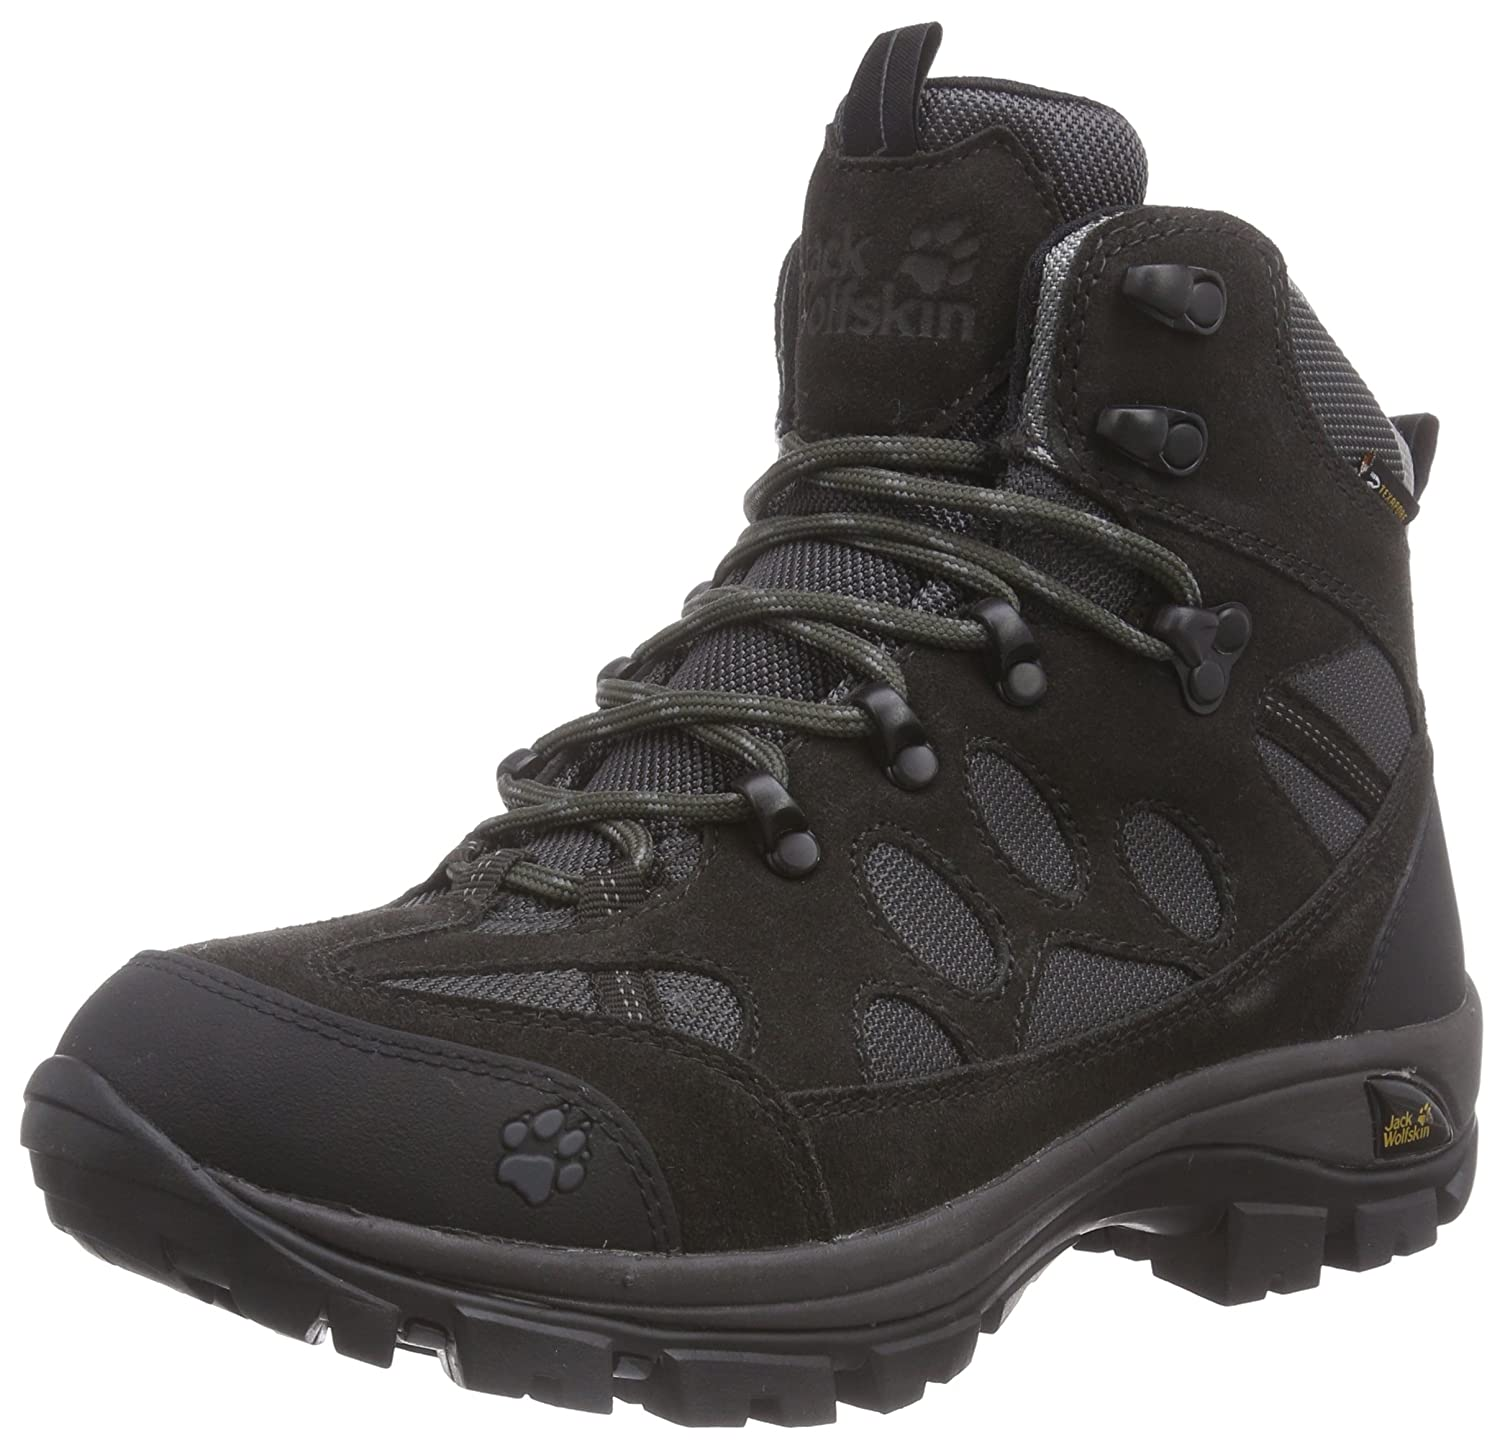 Jack Wolfskin Women's All Terrain 7 Texapore Mid W Hiking Boot B00TLAI77S 8 D US|Shadow Black